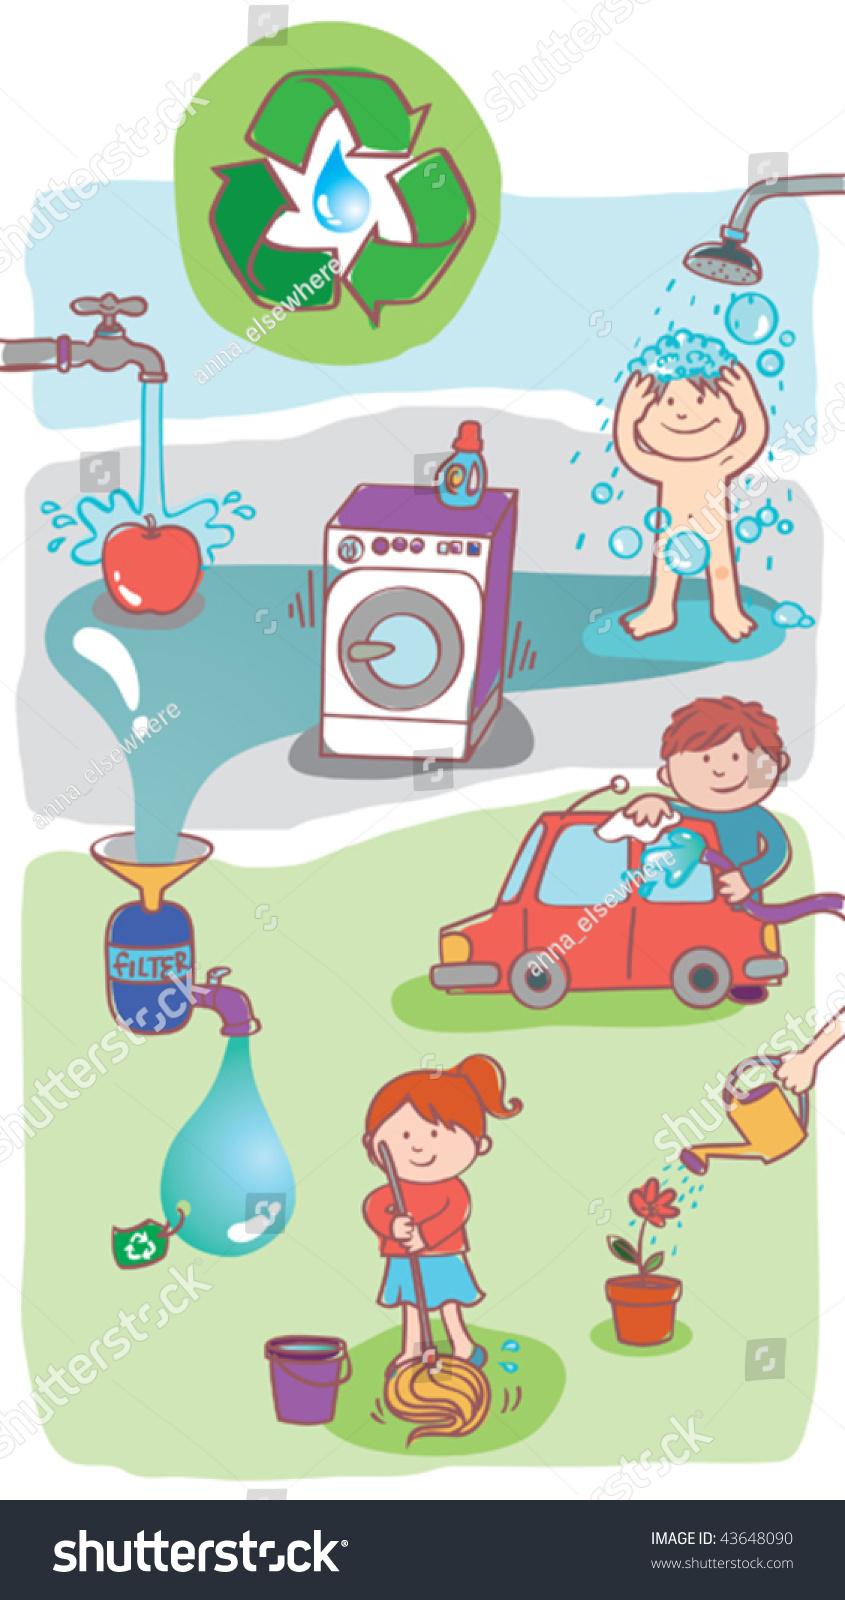 vector illustration showing how use home stock vector